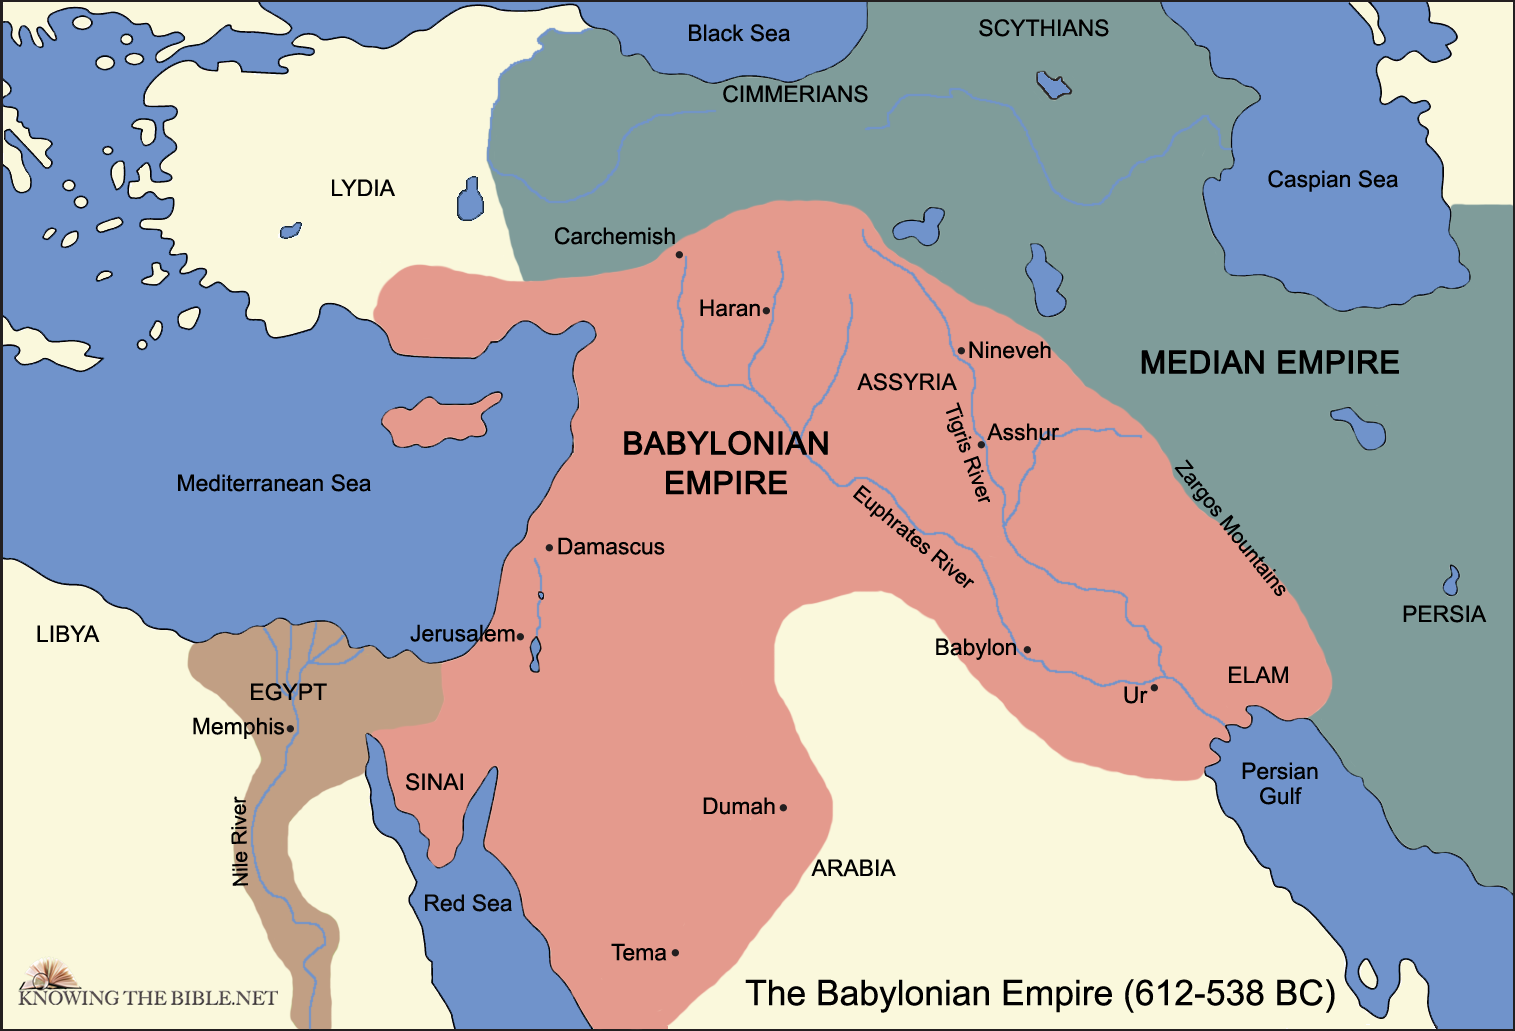 babilonian civilization Babylonia the babylonian empire was one of the great empires that dominated the region of mesopotamia many aspects that were unknown about this people were finally recent exposed, thanks to the work of archaeologists and specialists who managed to decipher the information contained in baked clay tablets and other inscriptions.